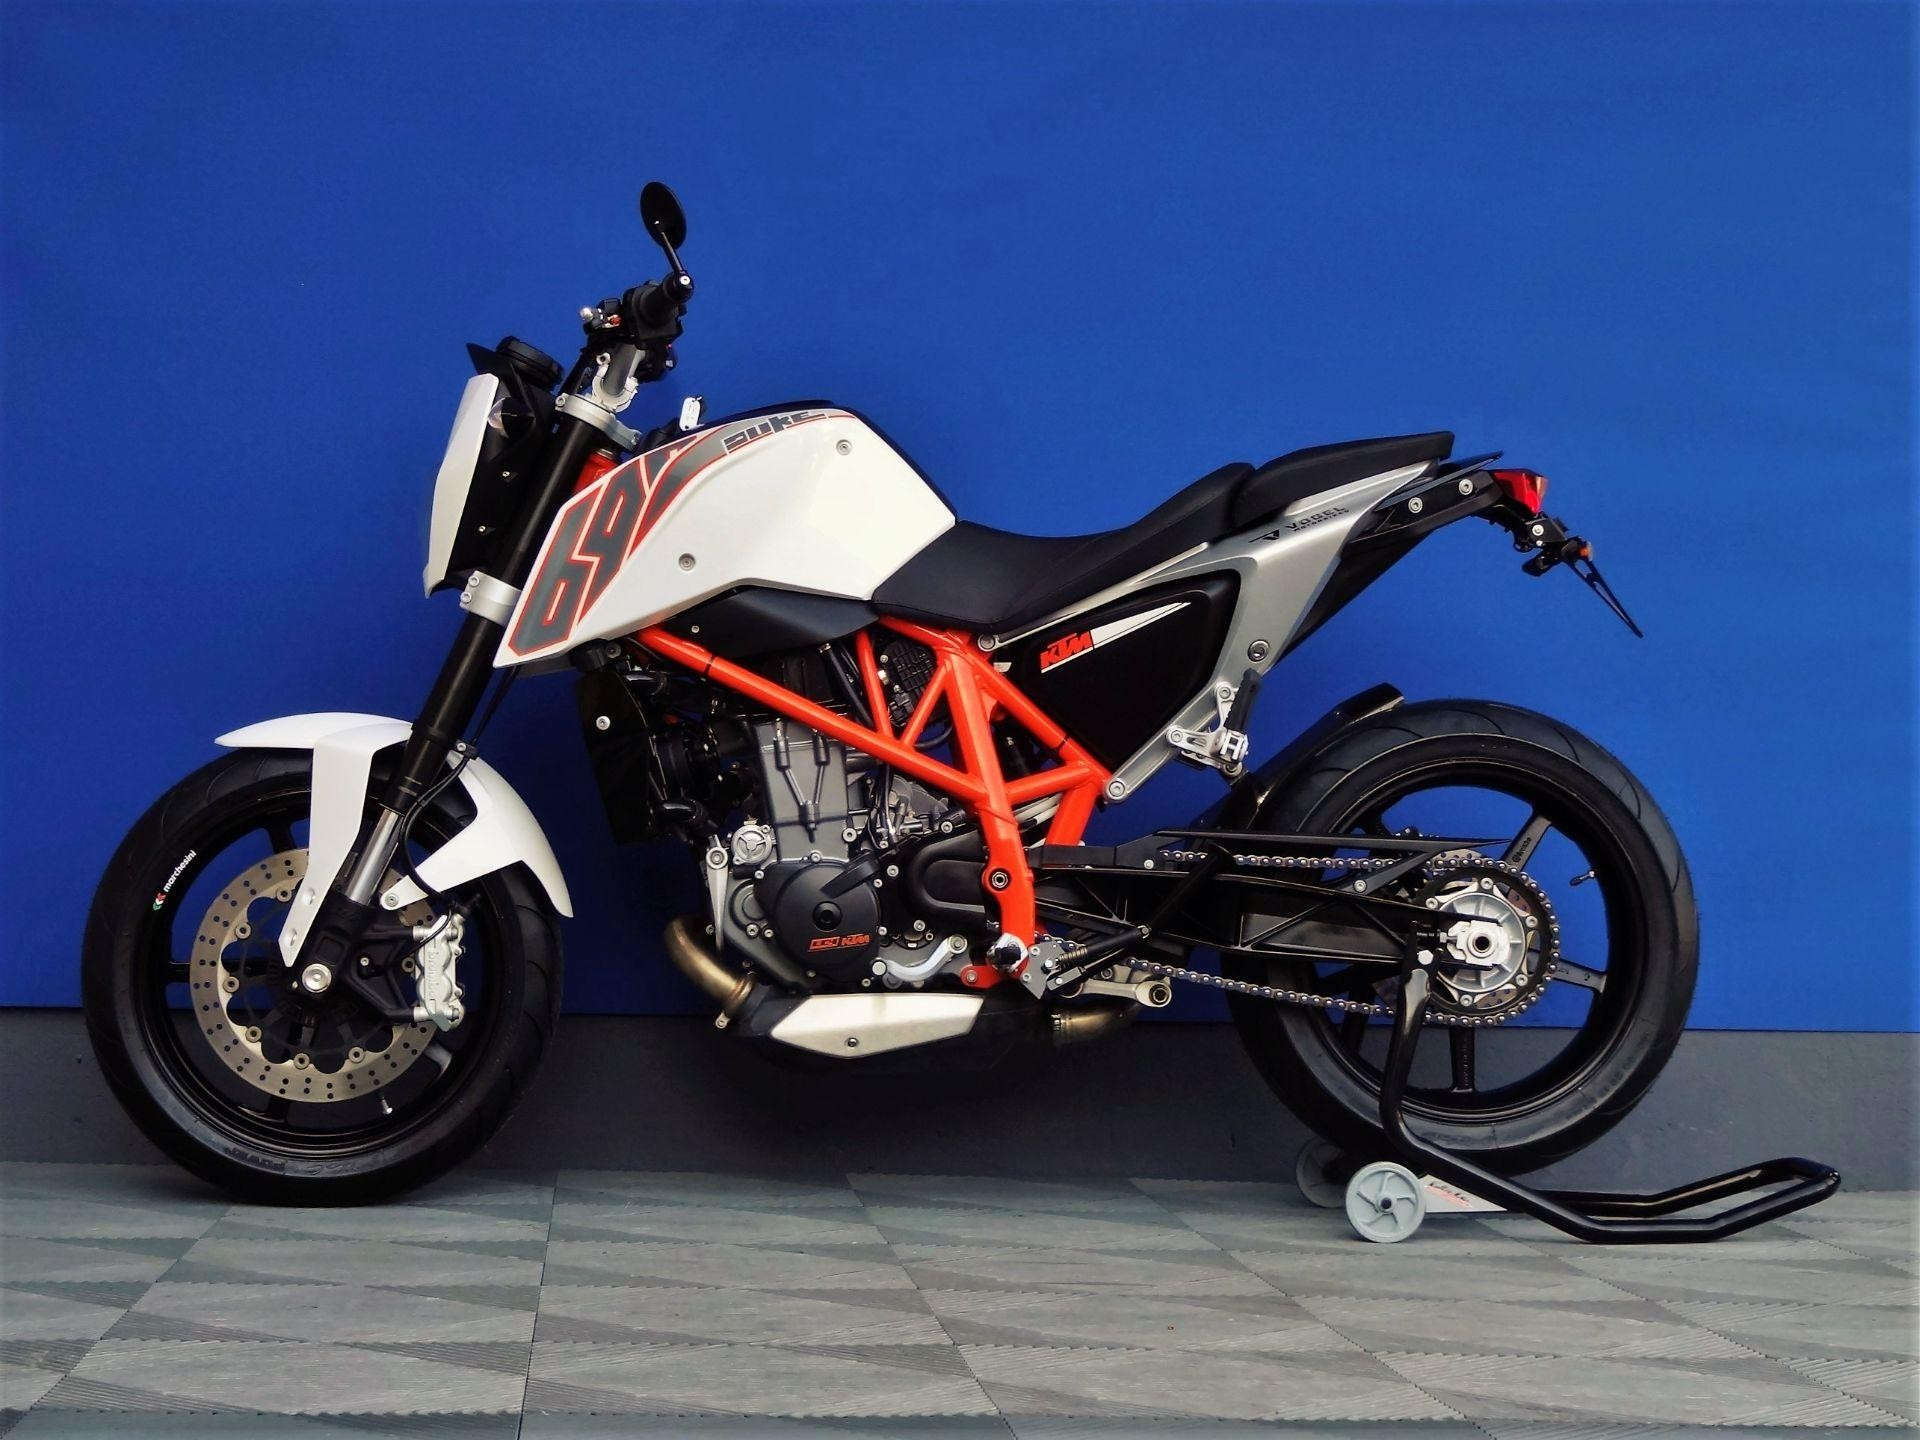 ktm 690 duke akrapovic vogel motorbikes sch pfheim occasion. Black Bedroom Furniture Sets. Home Design Ideas